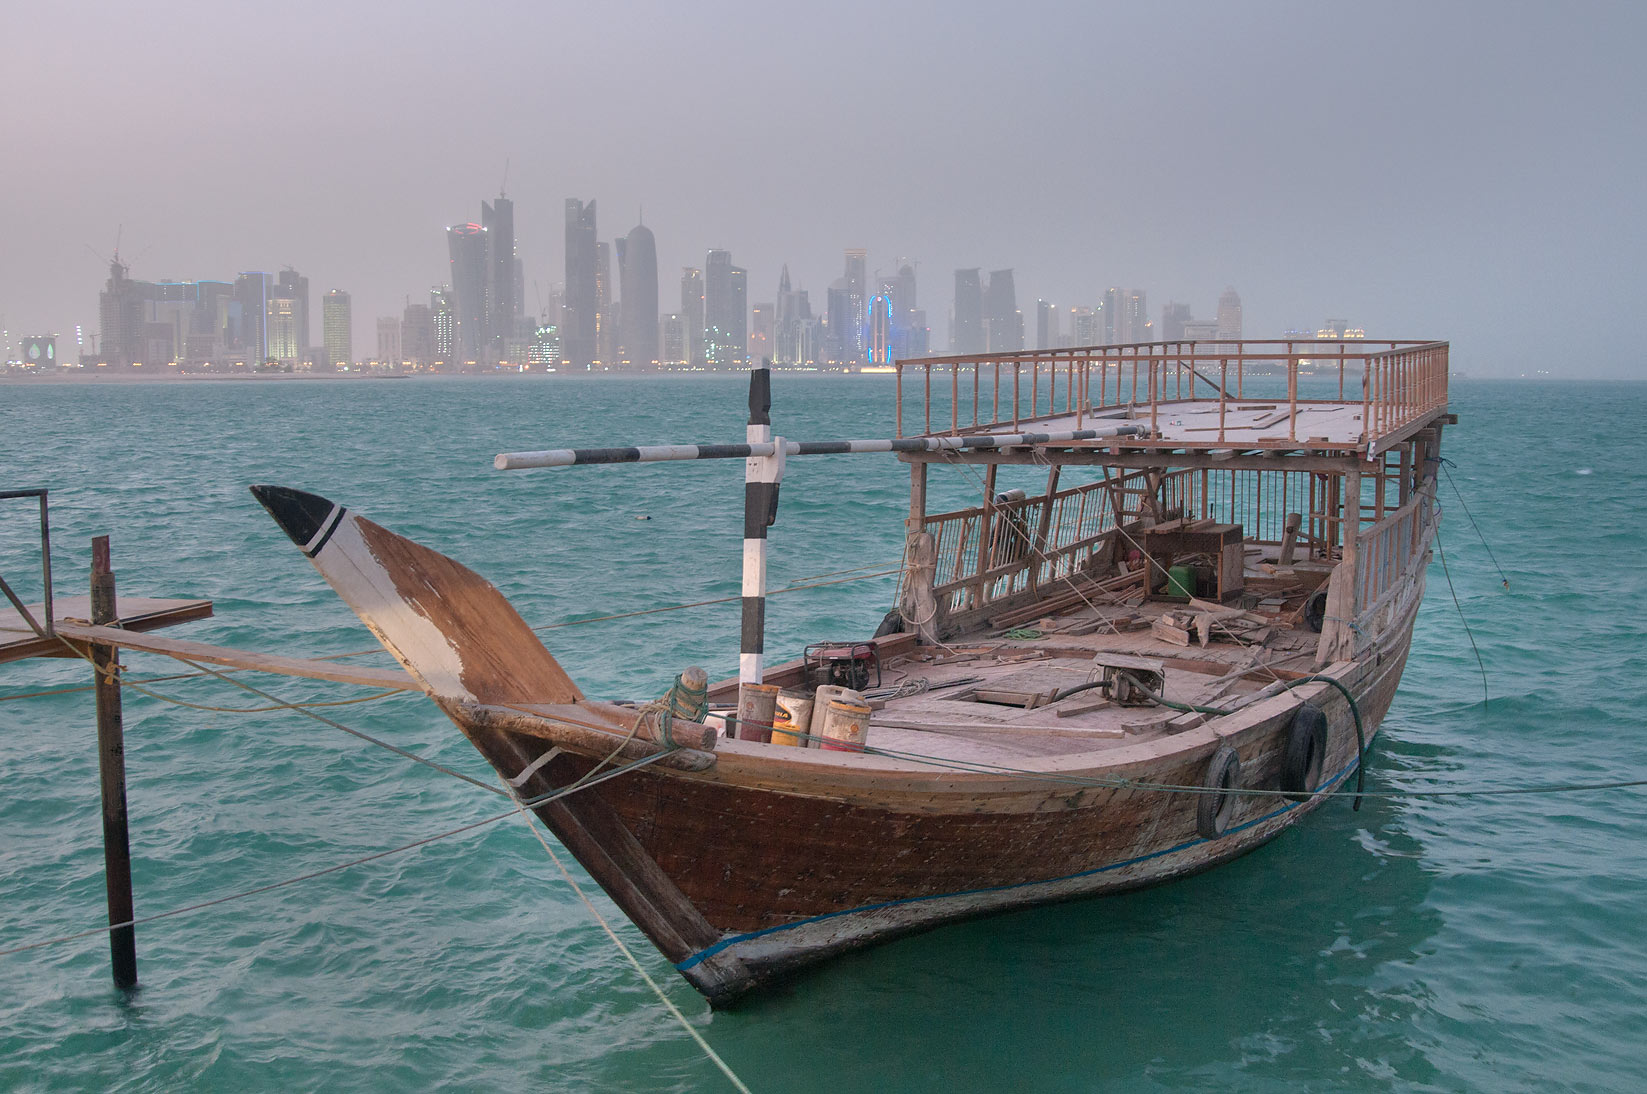 Dhow boat in fishing harbor, with West Bay in background. Doha, Qatar